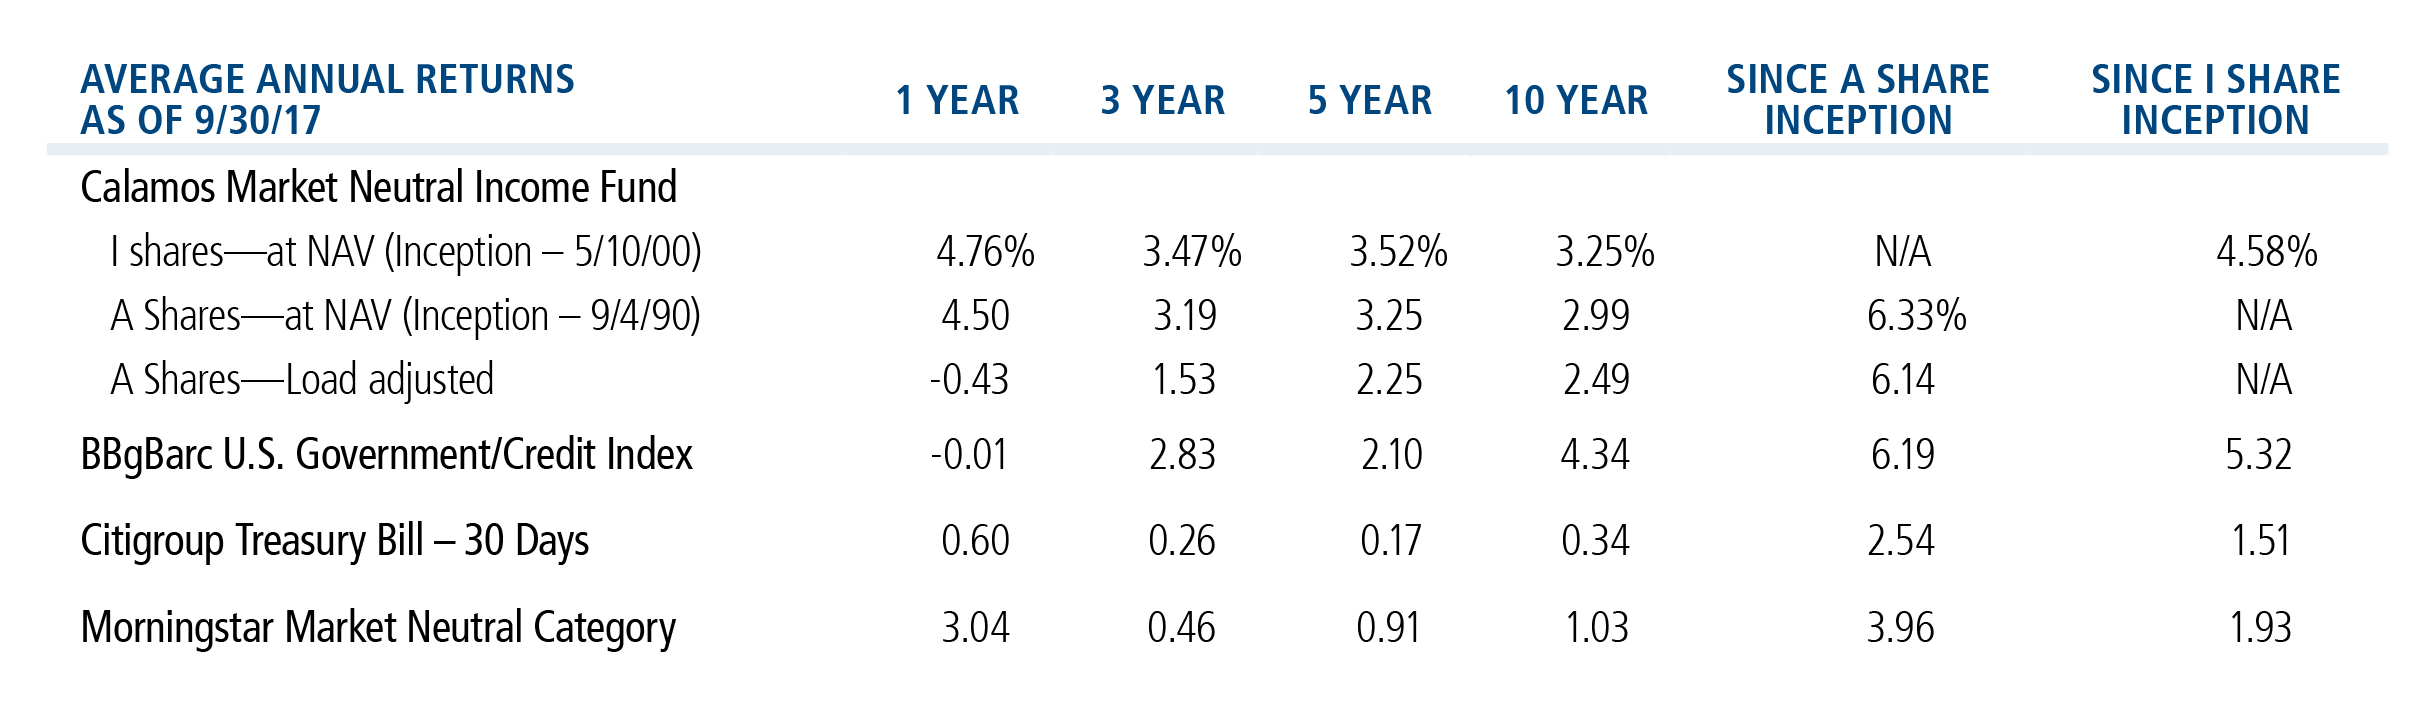 MNI annual returns